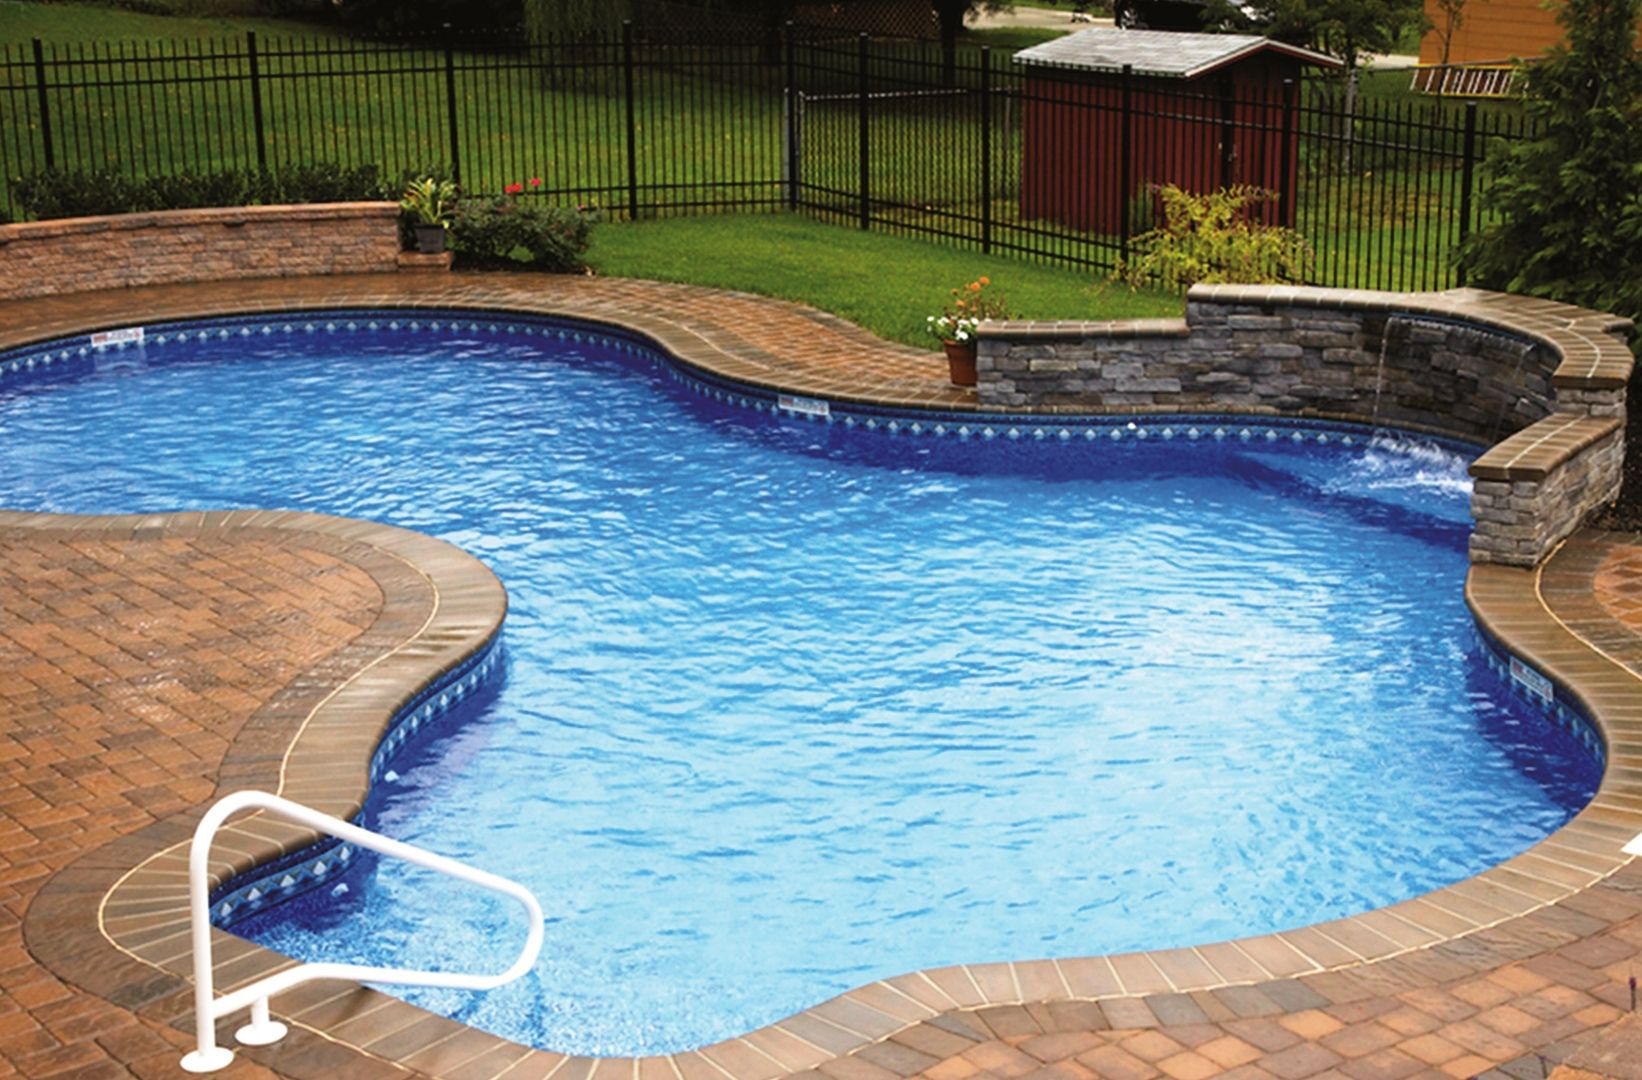 Back yard swimming pool ideas swimming pool design for Ideas for a pool